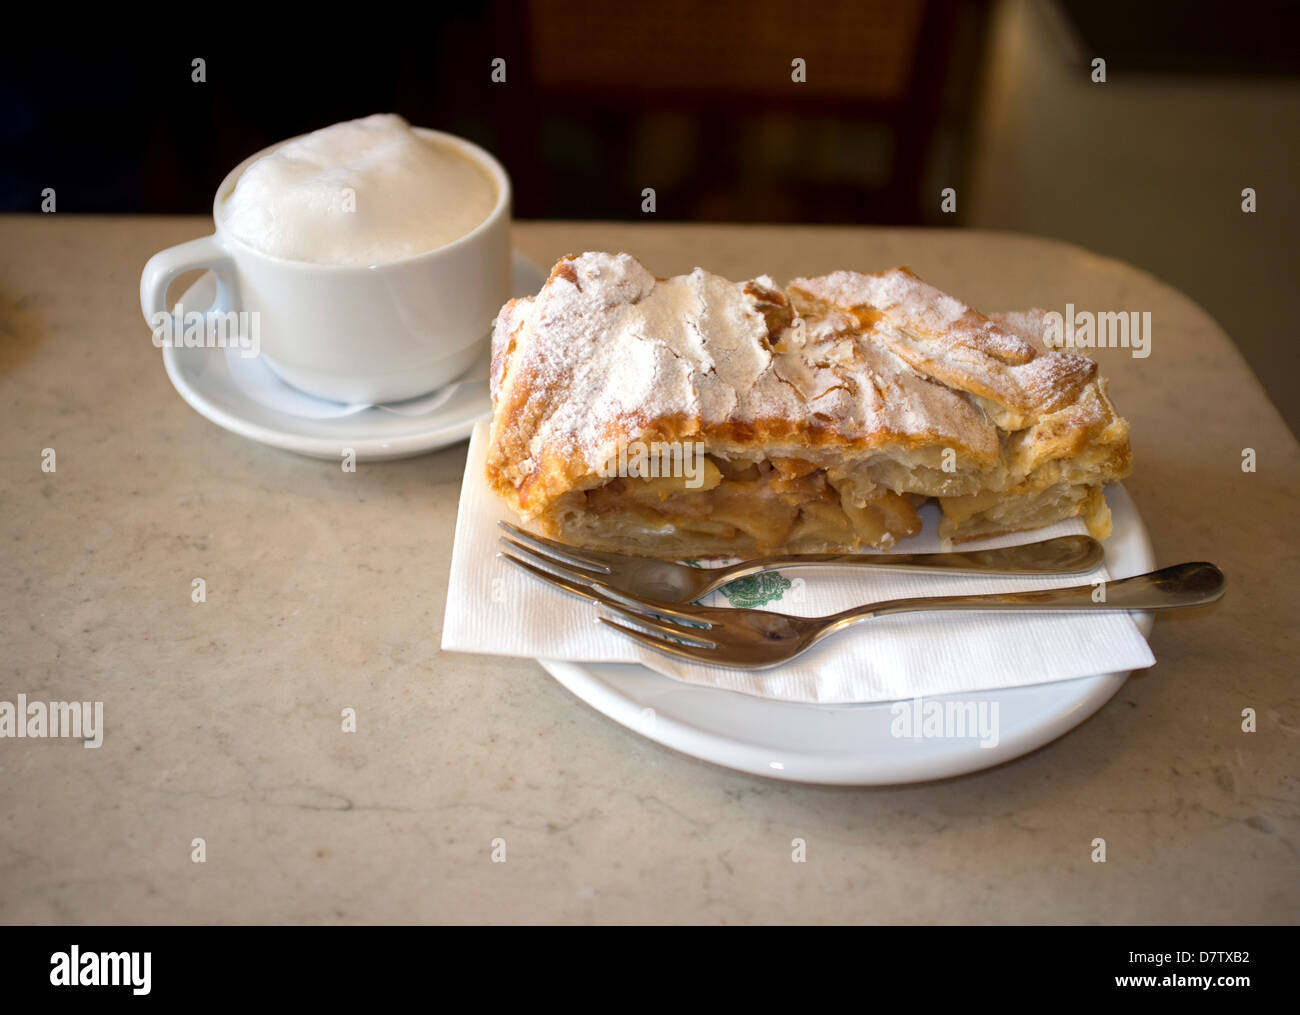 Apple strudel and cappuccino served in the Tomaselli Cafe in the Altstadt, Salzburg, Austira - Stock Image